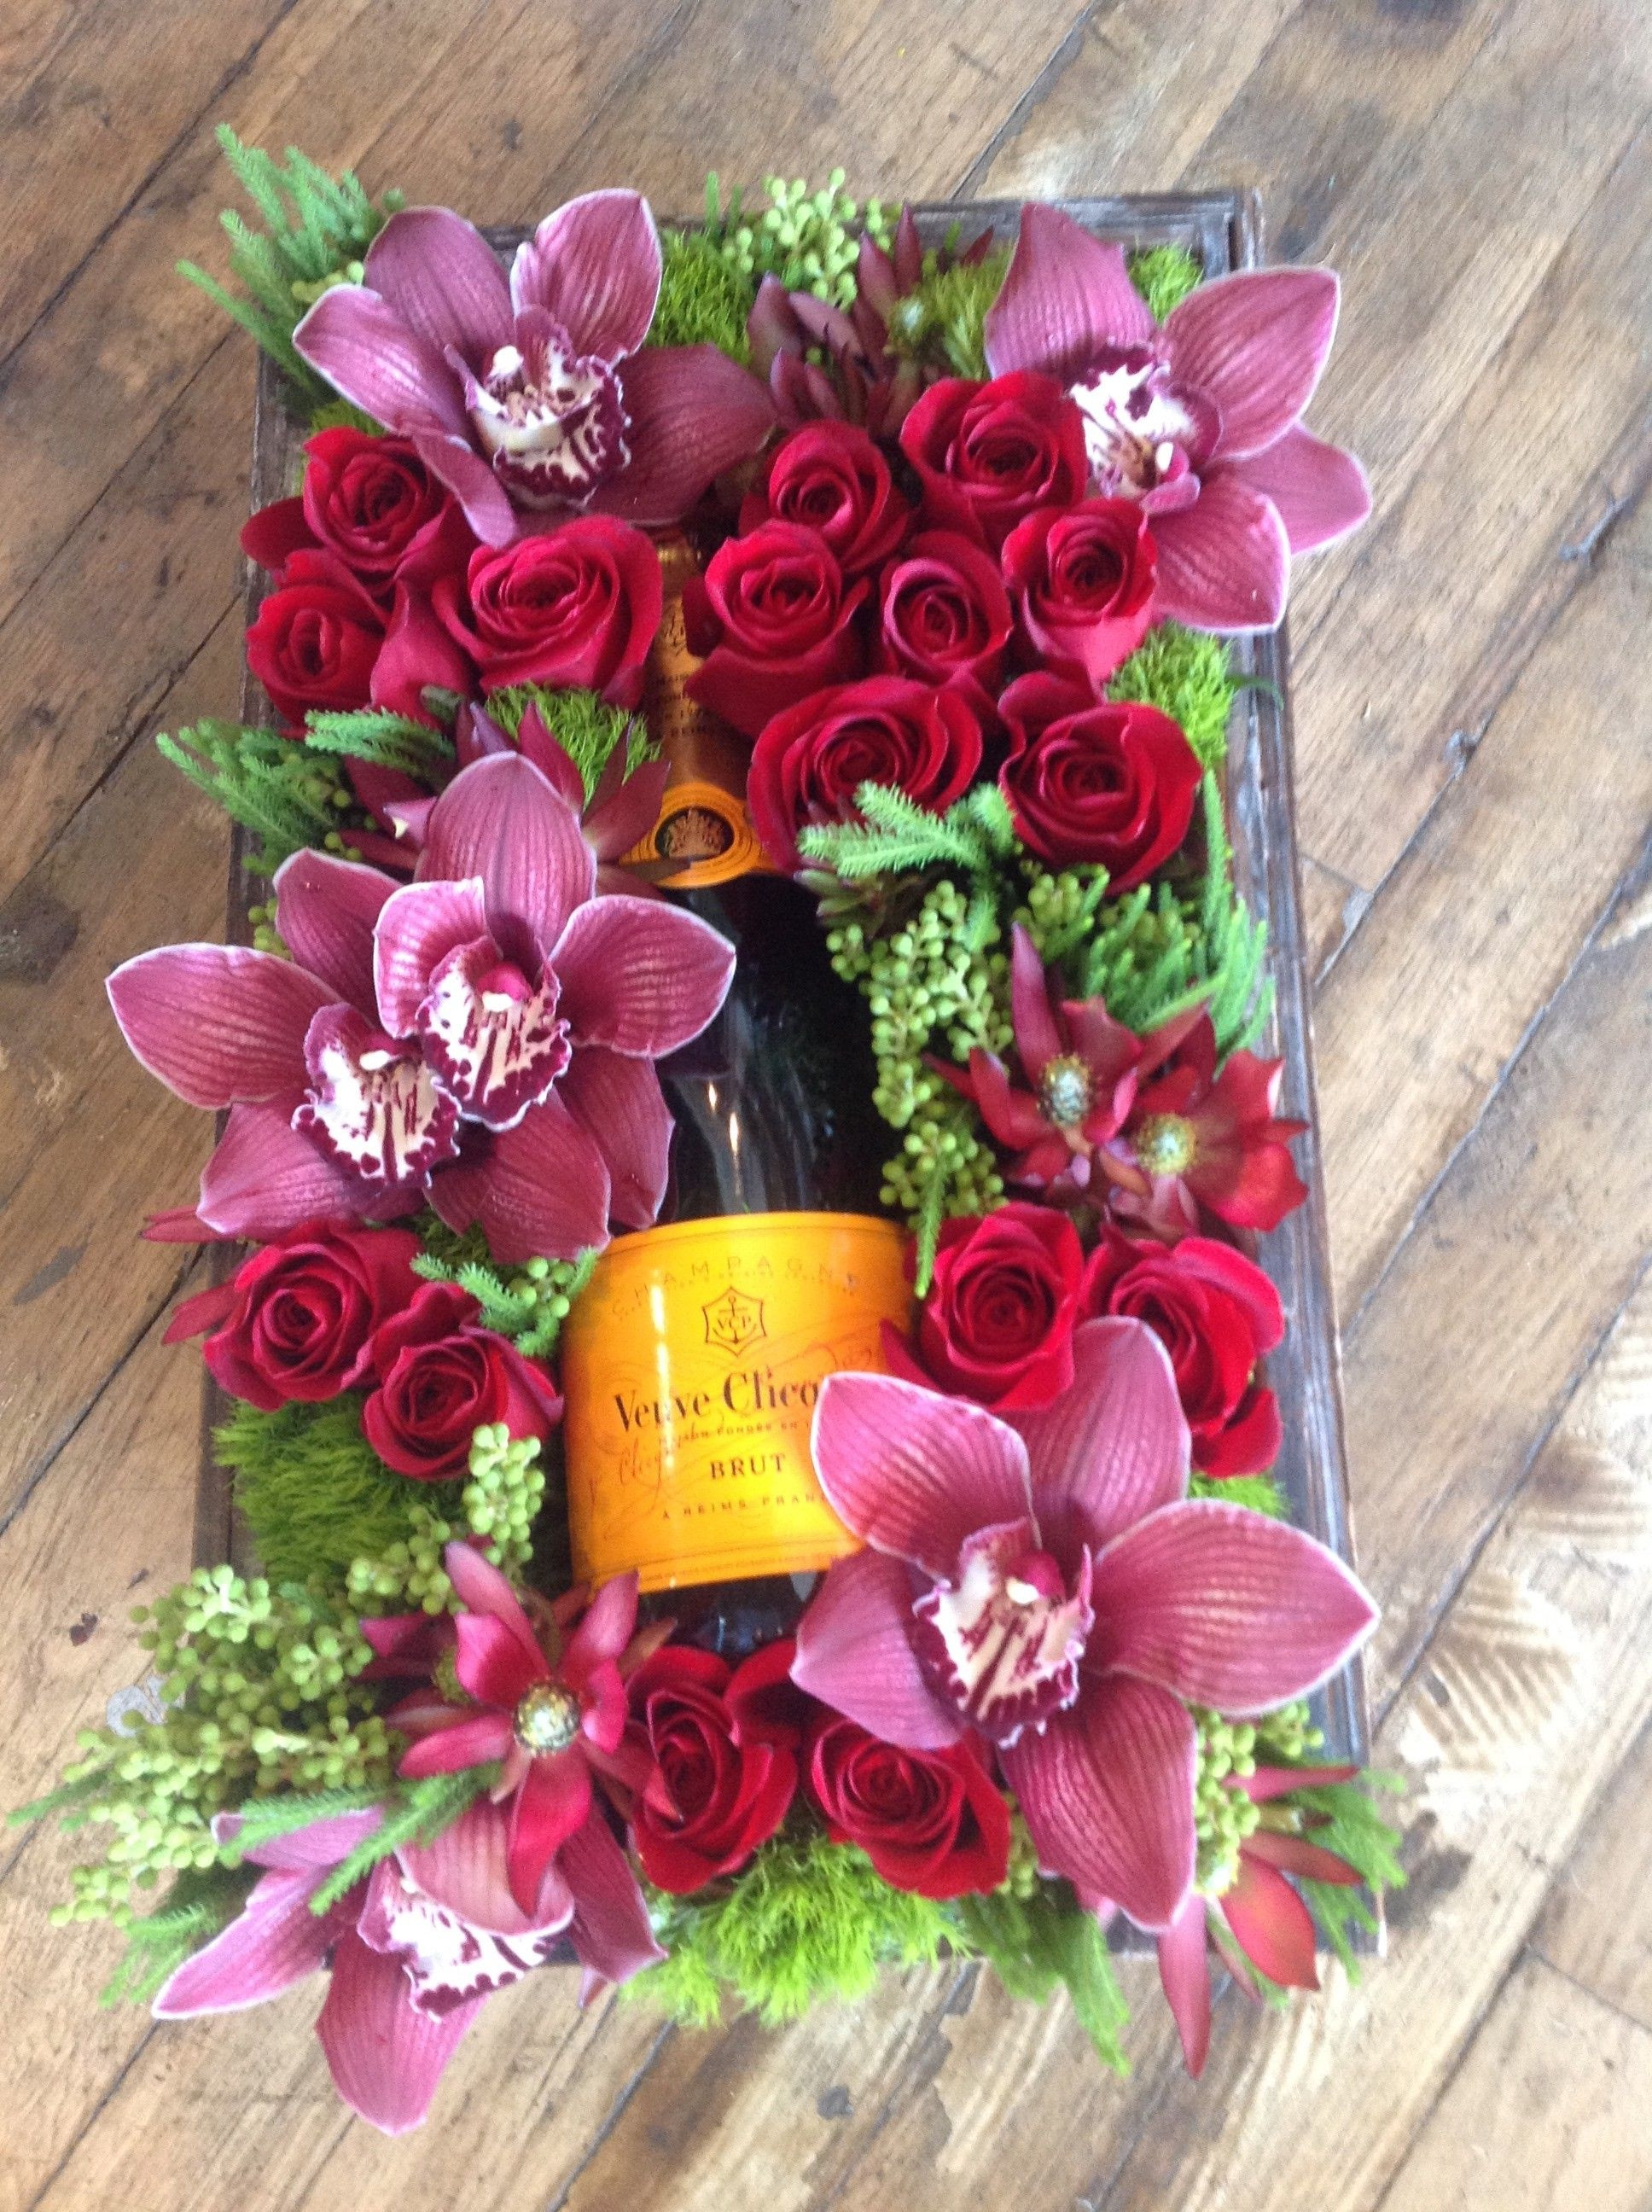 Send Bubbly & Bloom Gift Box in West Hollywood CA from Seed Floral the best florist in West Hollywood All flowers are hand delivered and same day